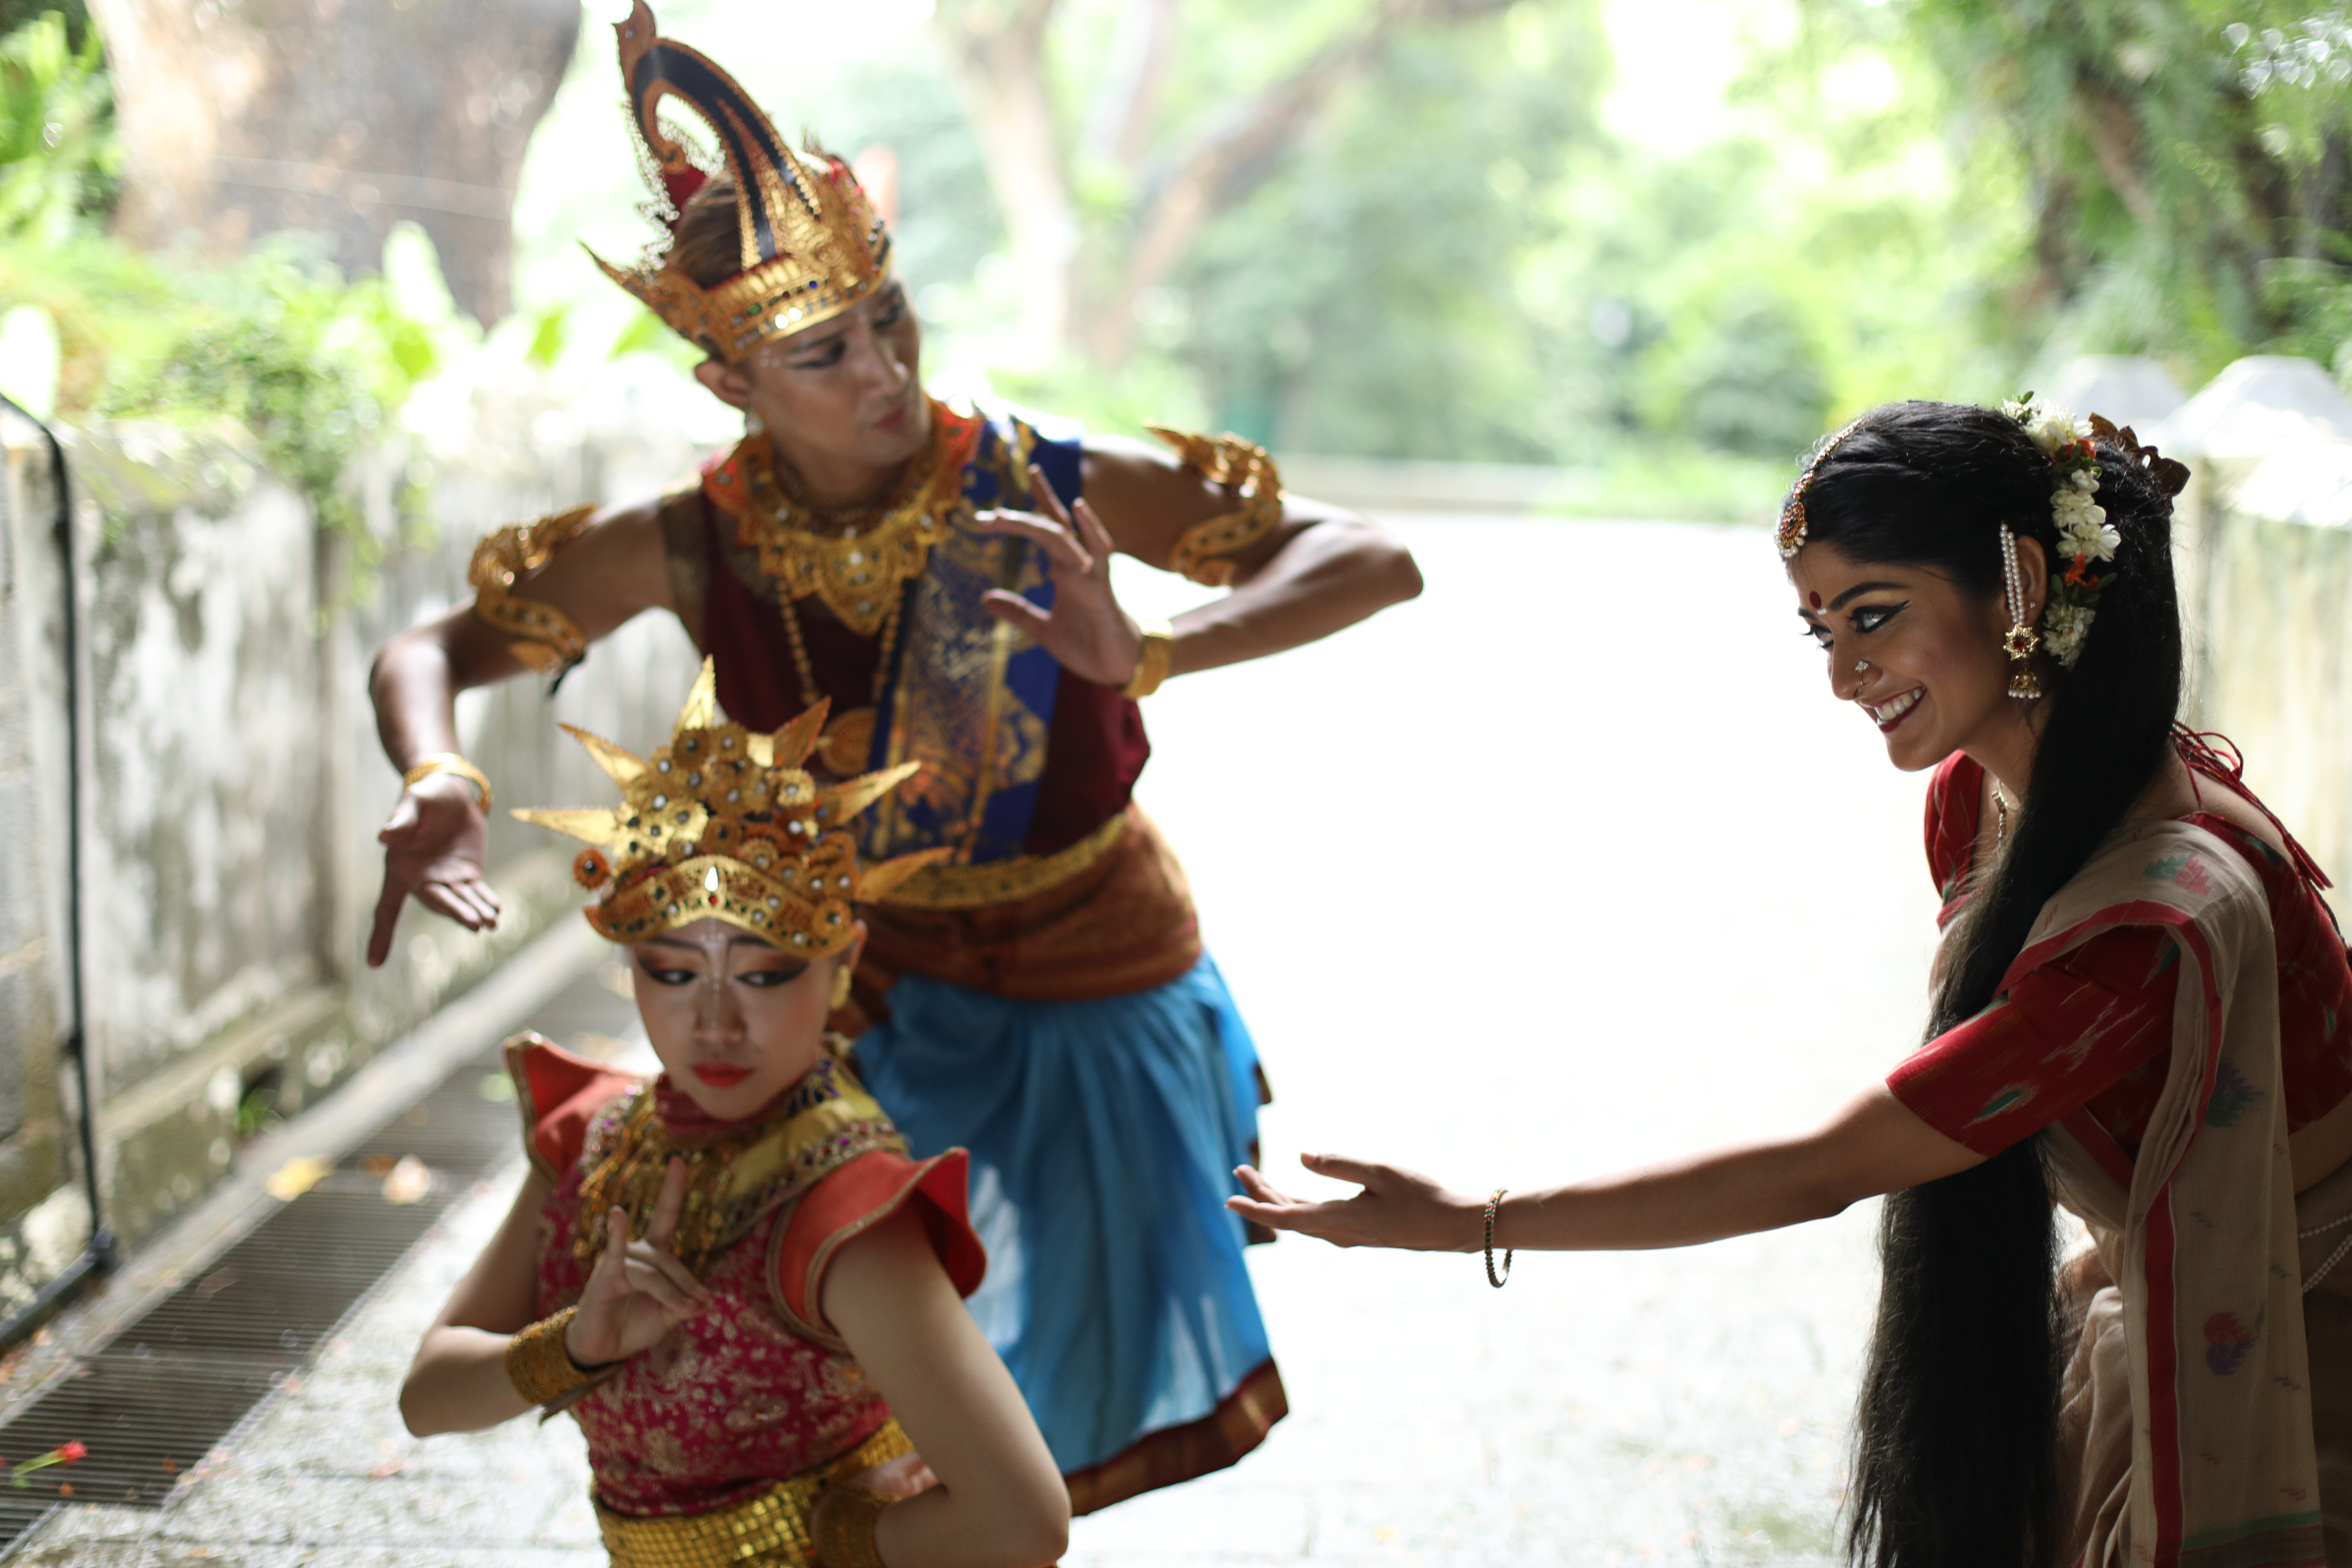 Maya Dance Theatre's 2-part dance drama series - Ramayana, The Journey Begins, Chapter 1 and Chapter 2 was premiered at the IHC CultureFest 2020. Photo Courtesy: MDT